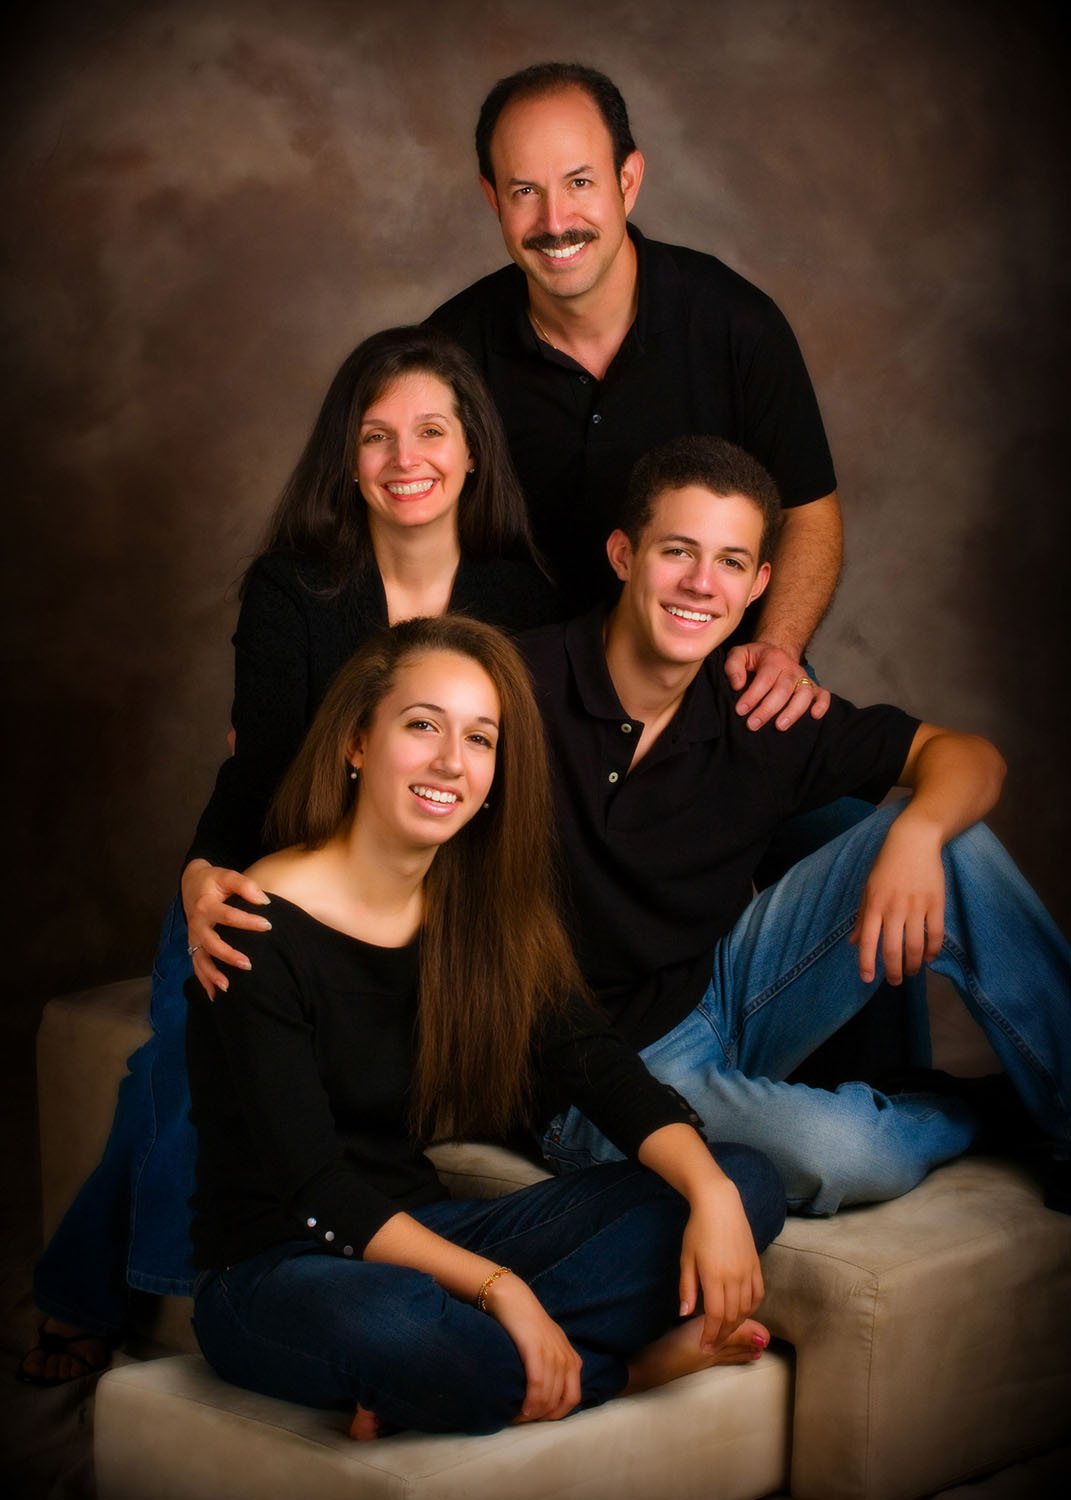 family portrait on brown